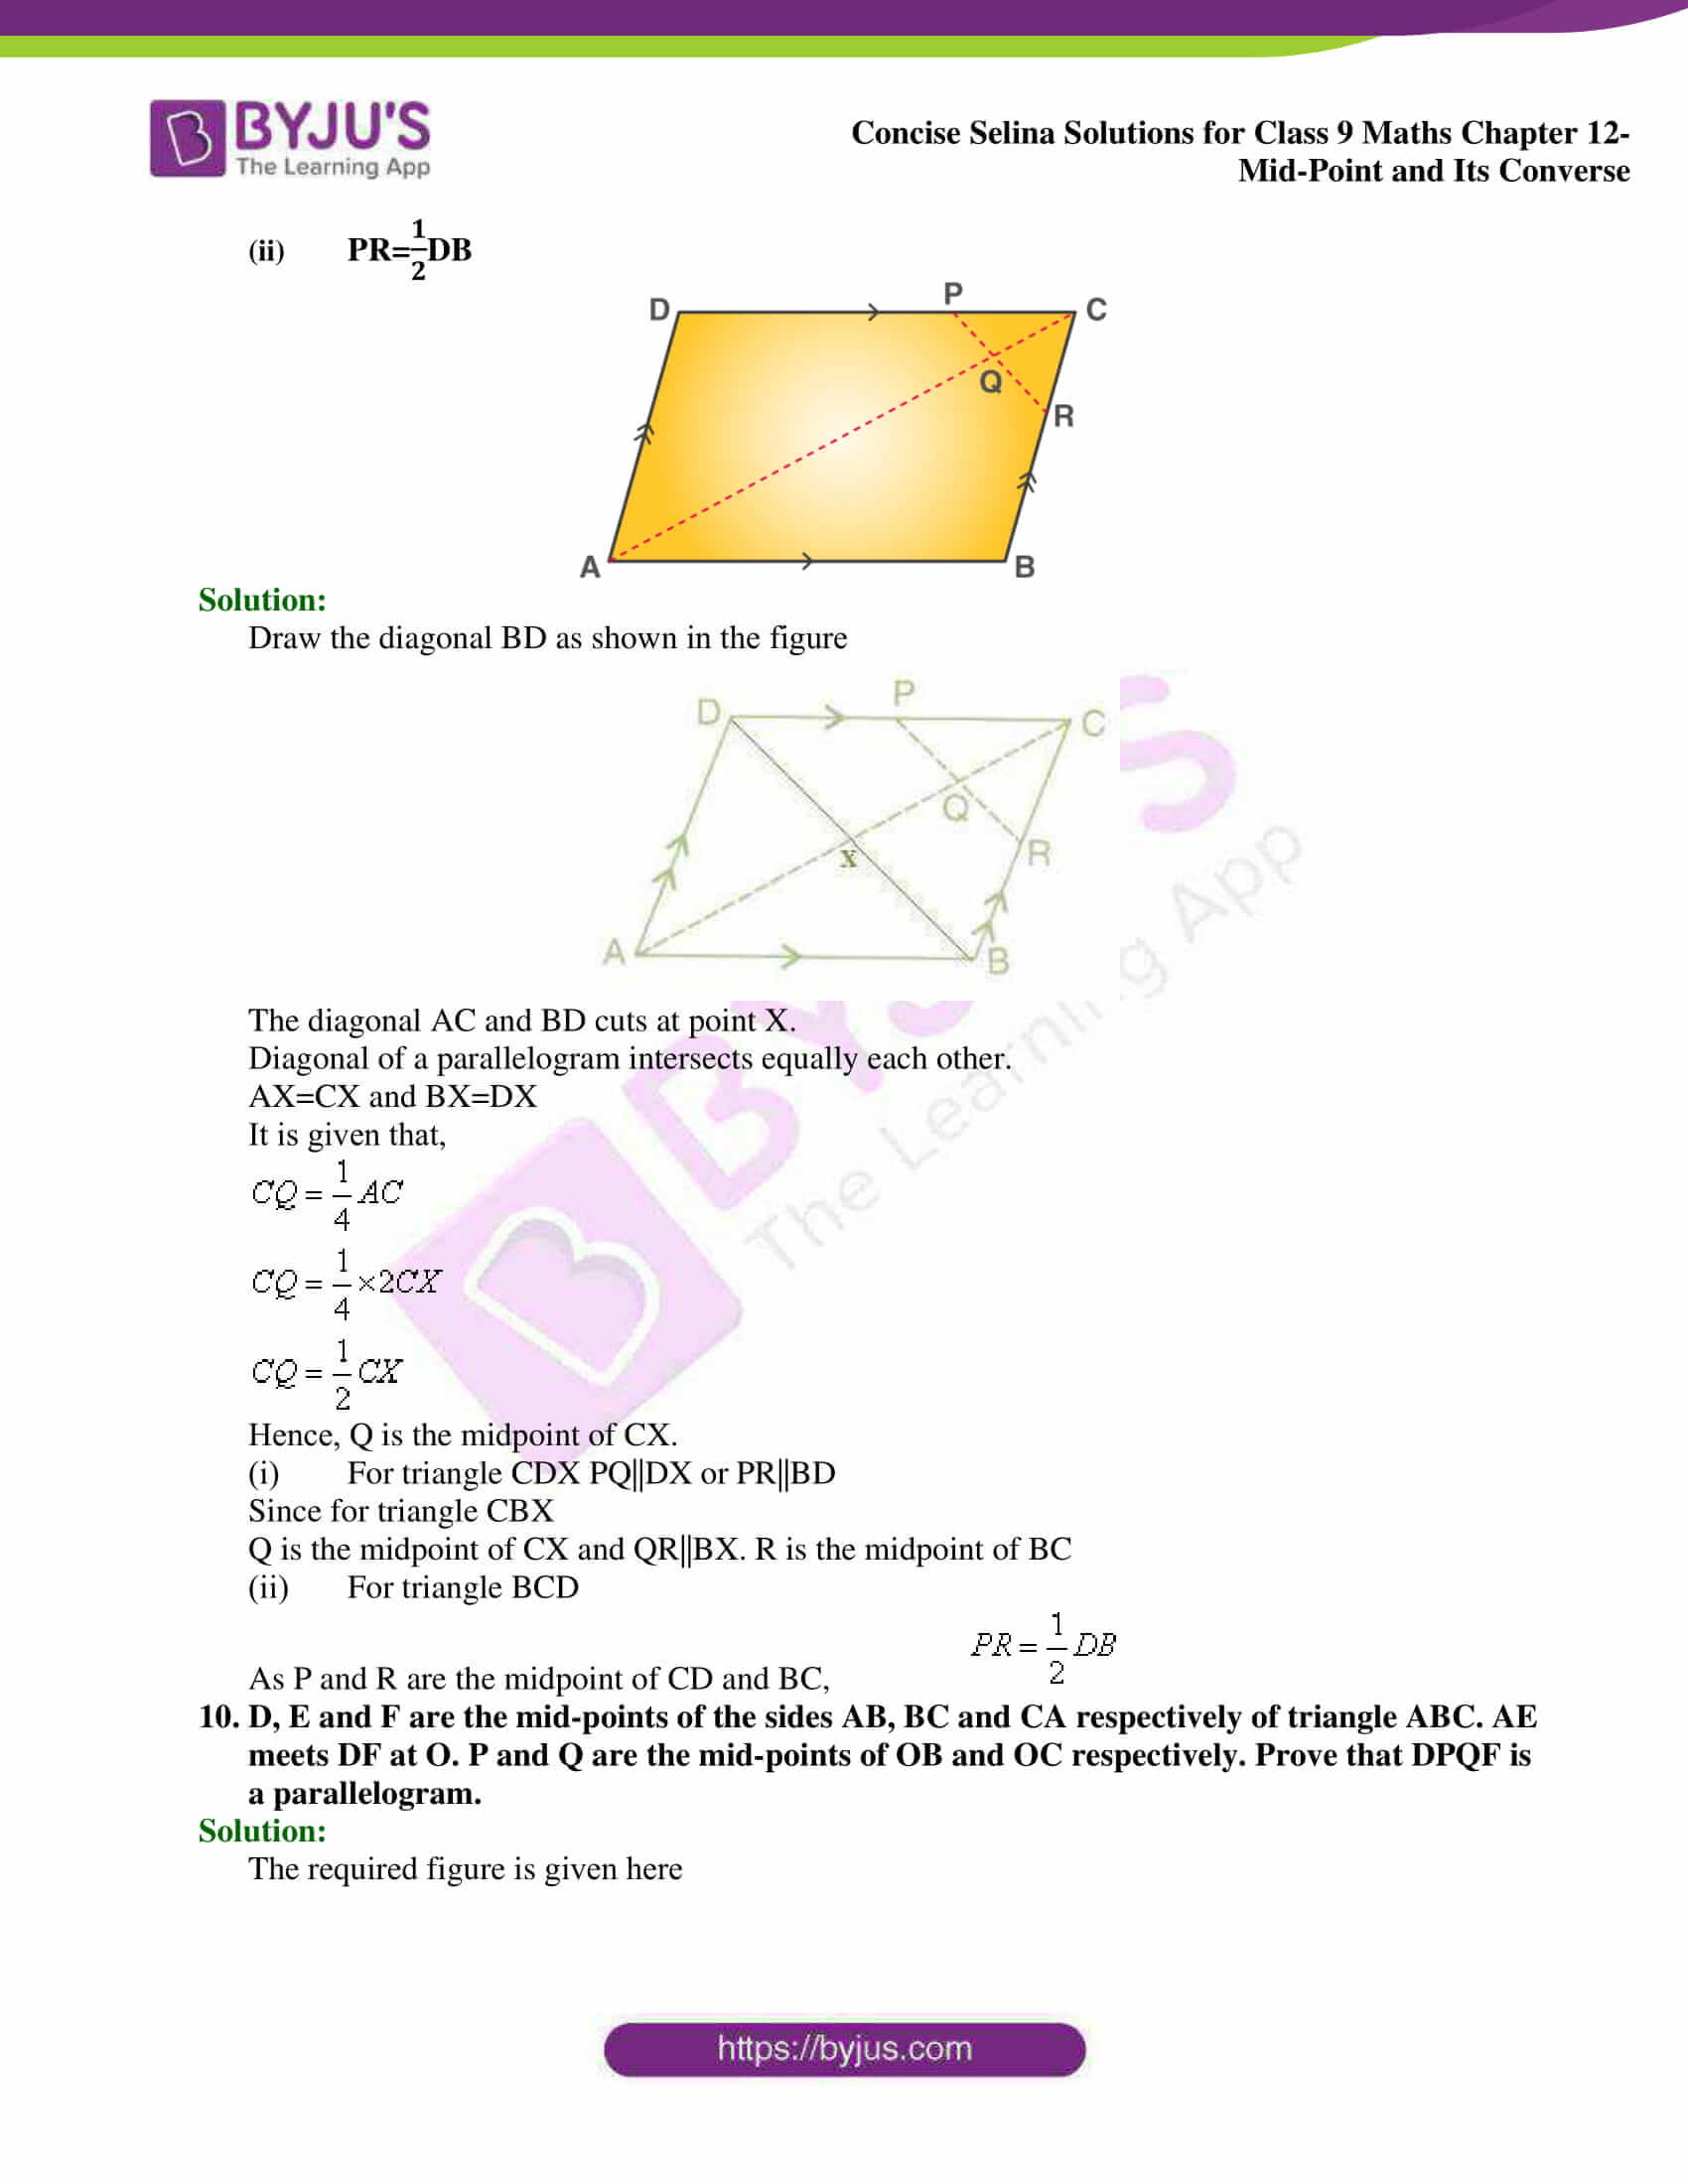 selina Solutions for Class 9 Maths Chapter 12 06